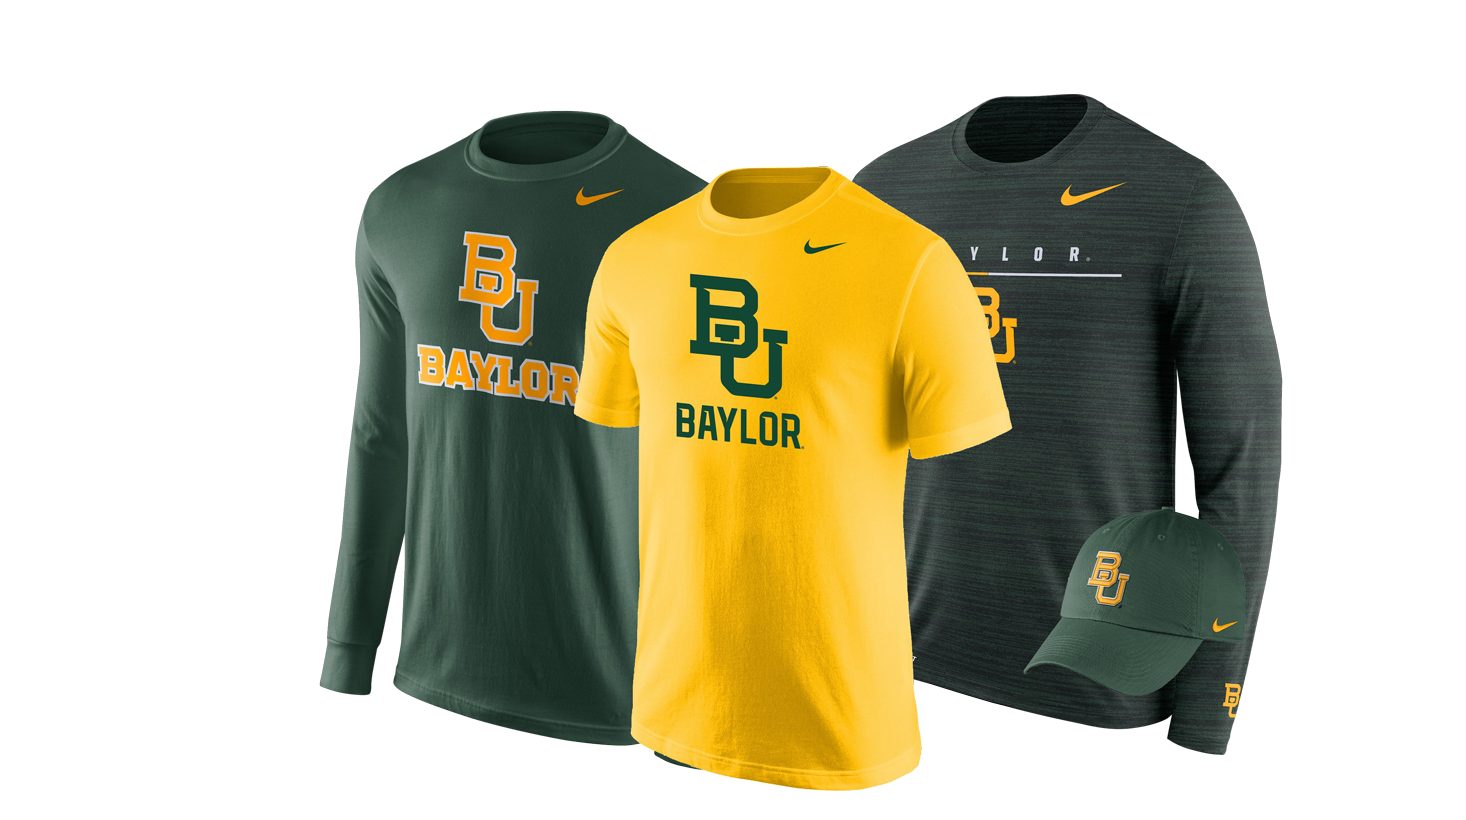 Baylor Apparel | Baylor Bears Gear, Merchandise & Gifts